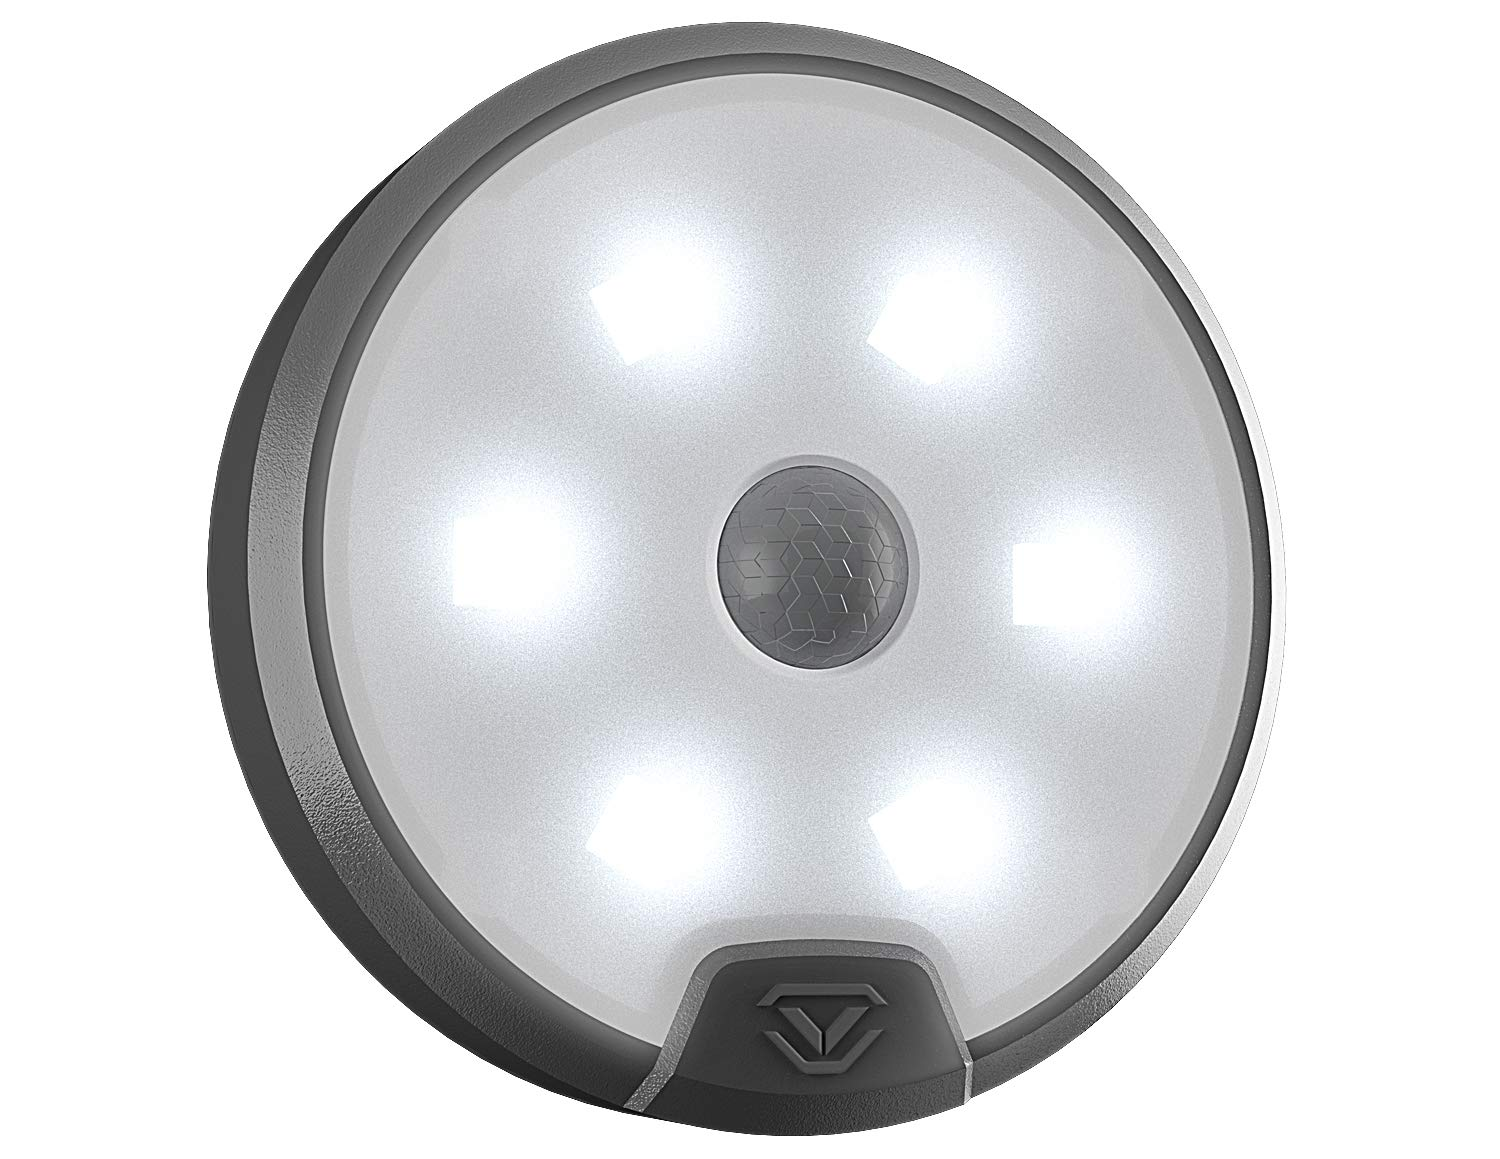 Vaultek VLED6 Motion Activated Universal LED Light with Rechargeable Battery. Perfect for Lighting Inside Gun Safe.